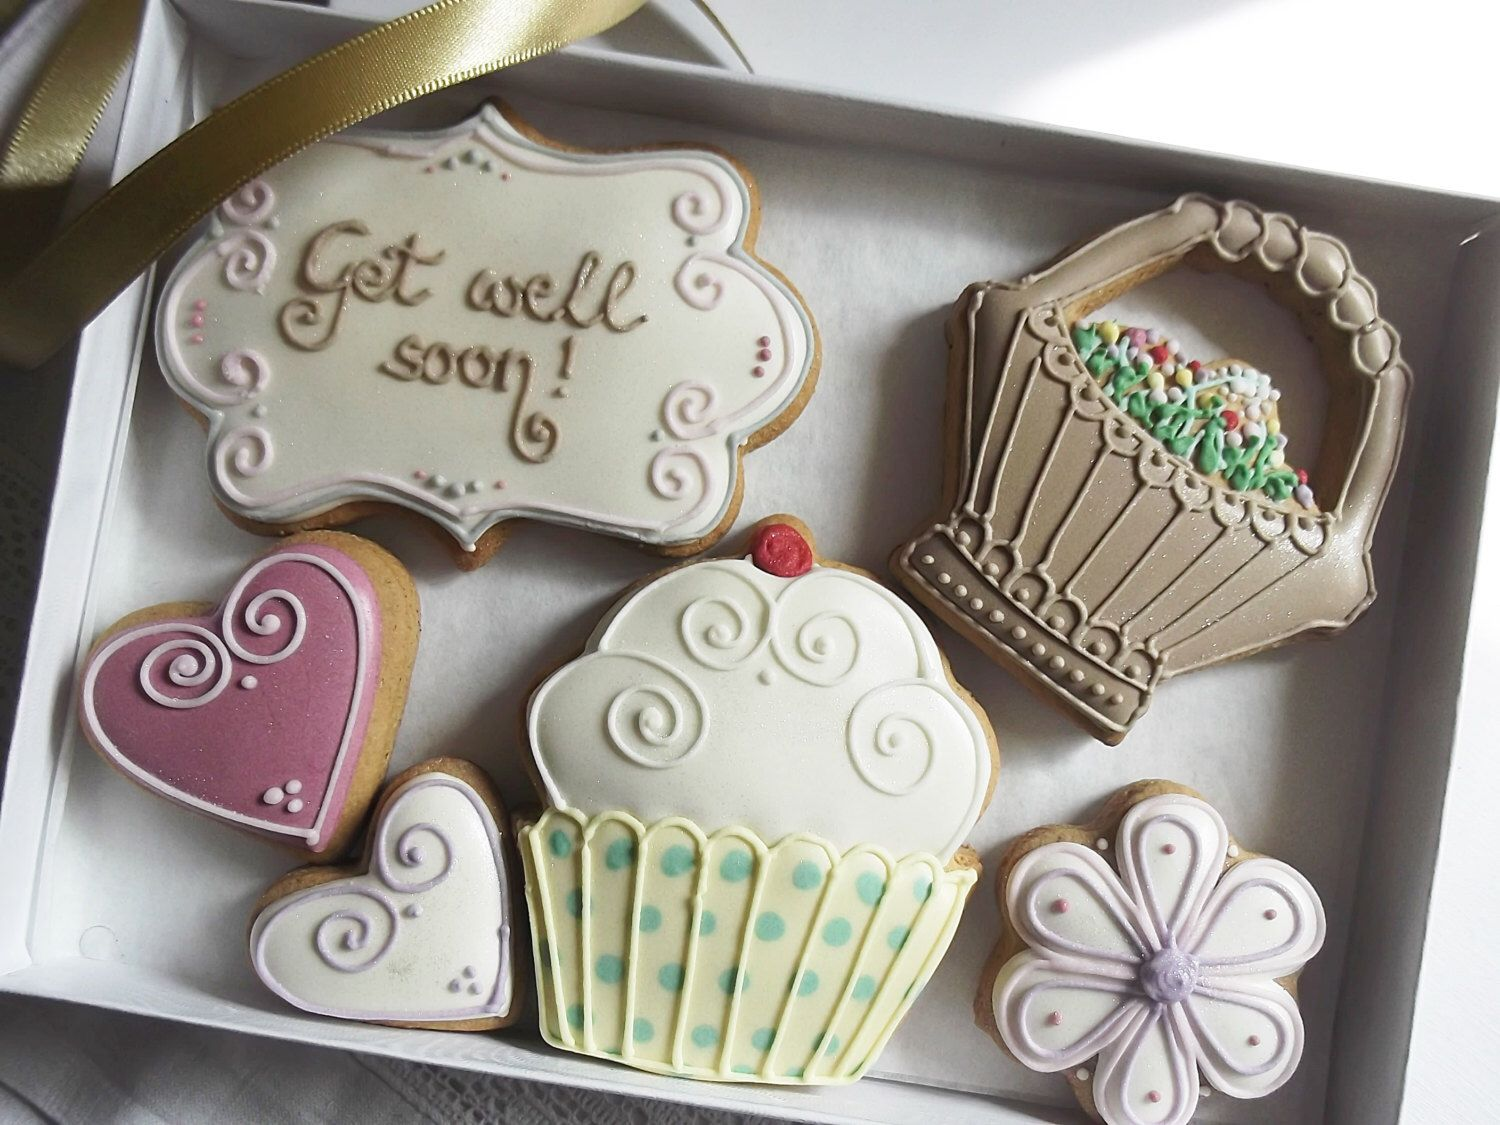 Get well soon cookie gift box can be personalised free uk get well soon cookie gift box can be personalised free uk shipping by negle Gallery